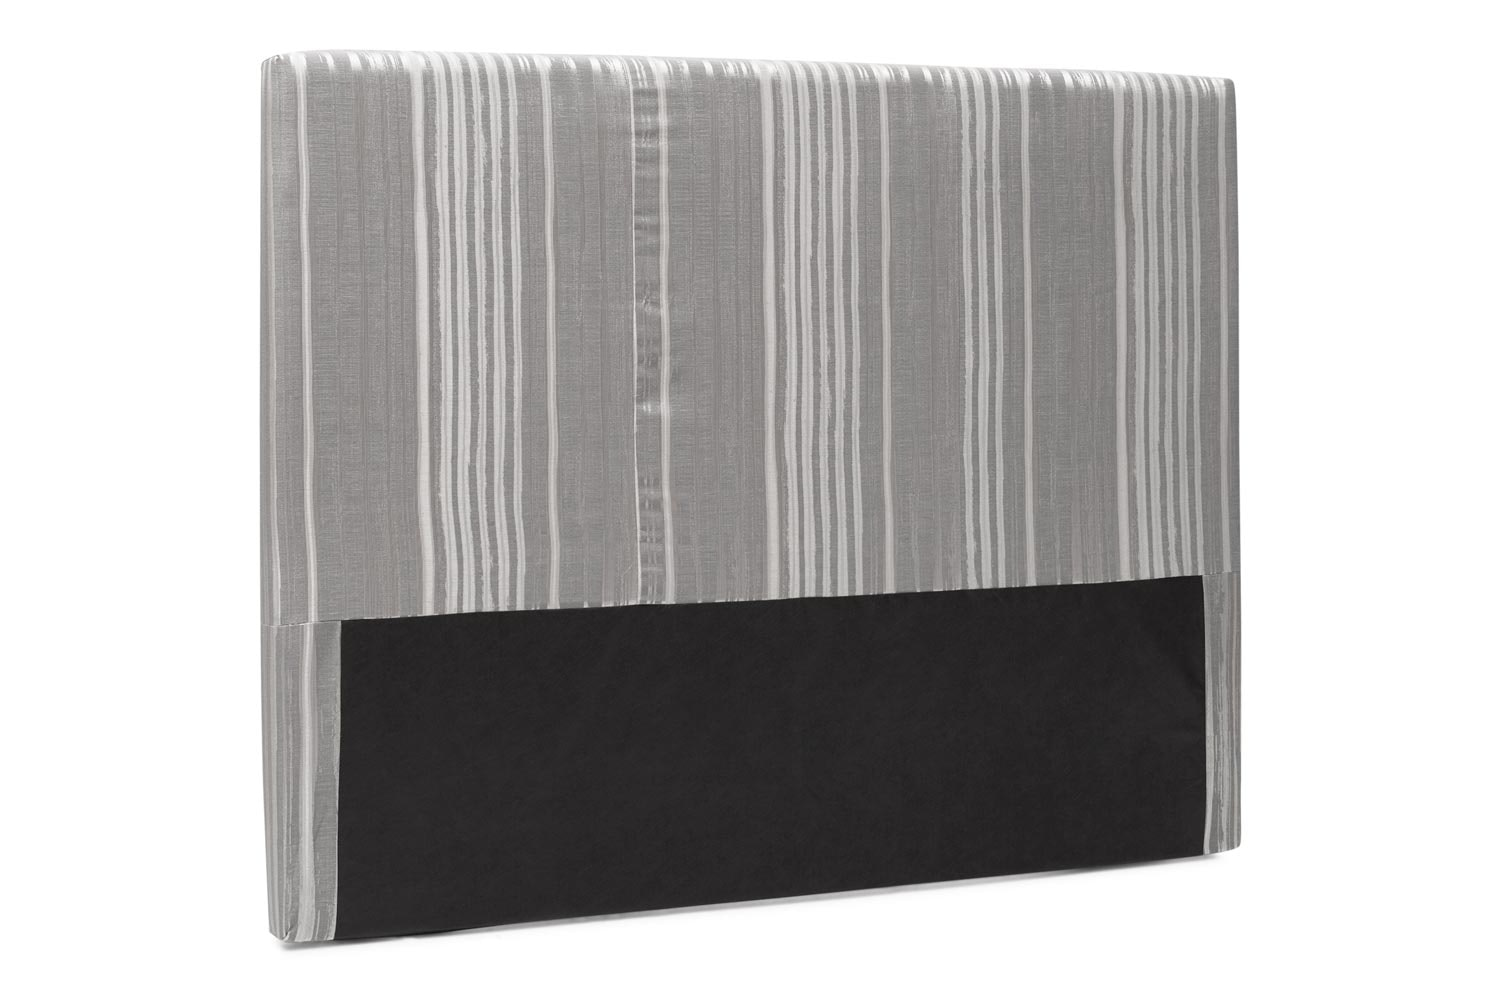 Abbey Headboard Cover |6Ft |Cotton Stripe Grey